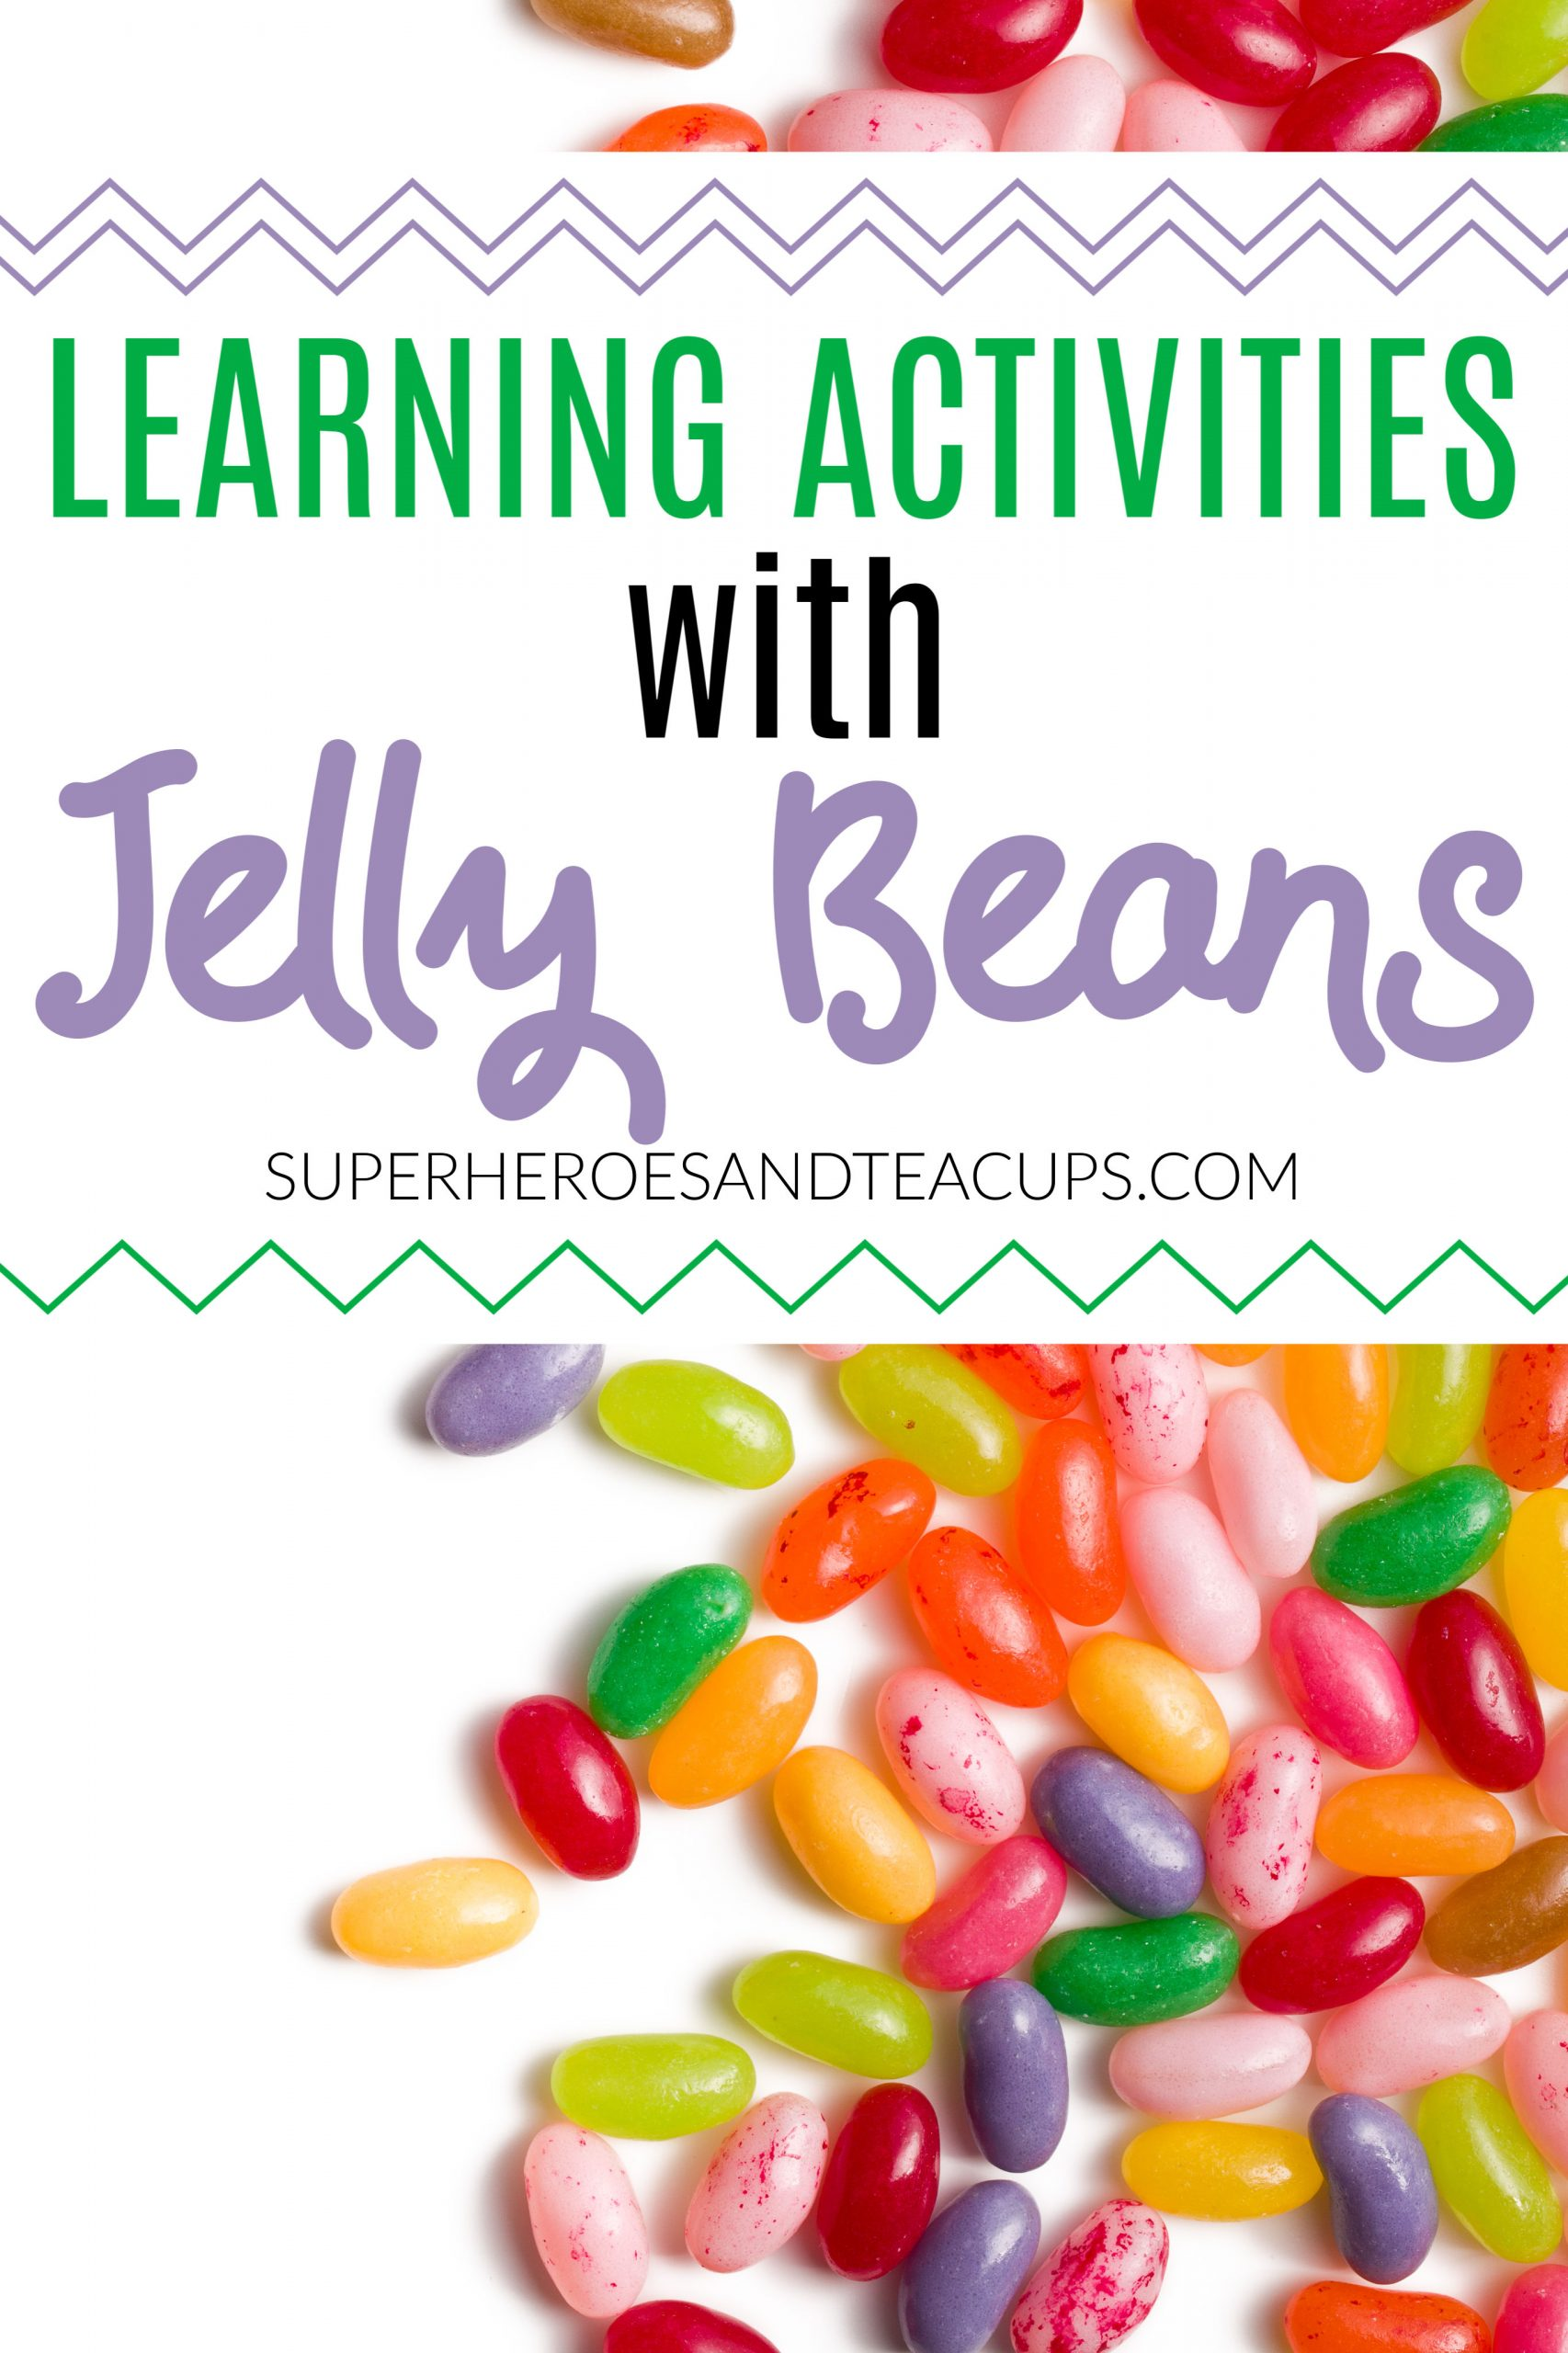 Learning Activities with Jelly Beans